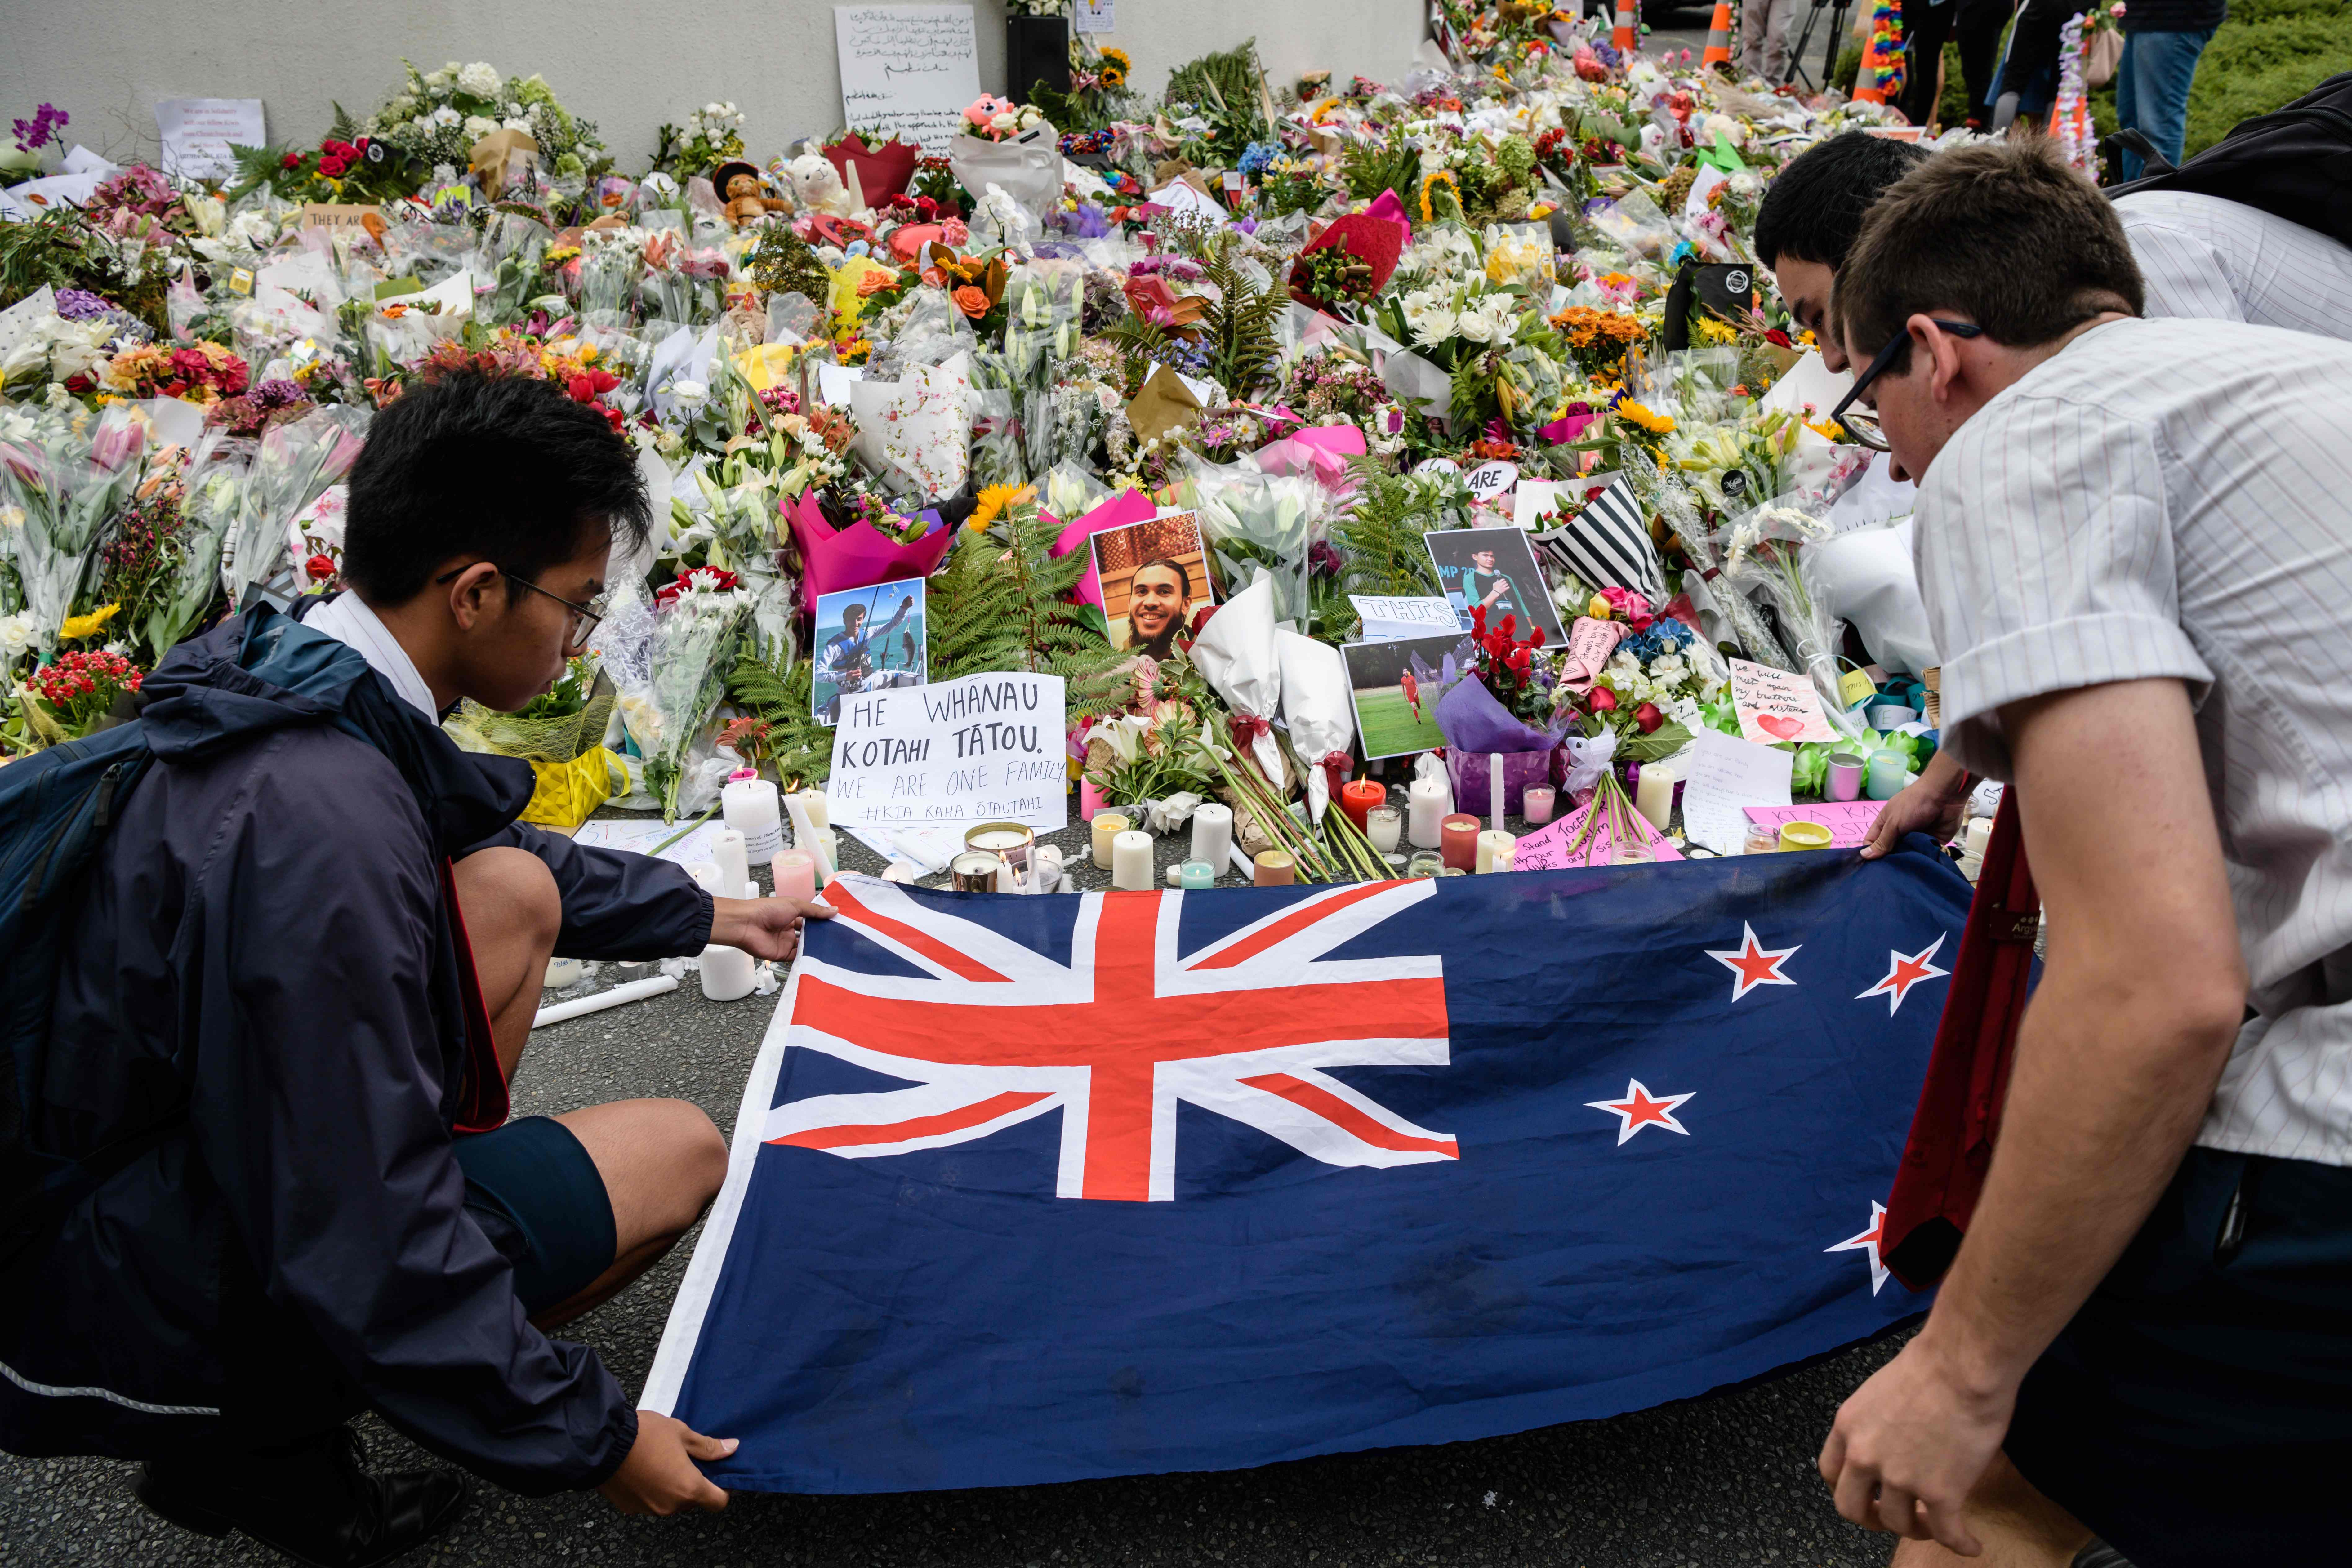 New Zealand bans military-style assault rifles after deadliest attack in nation's history